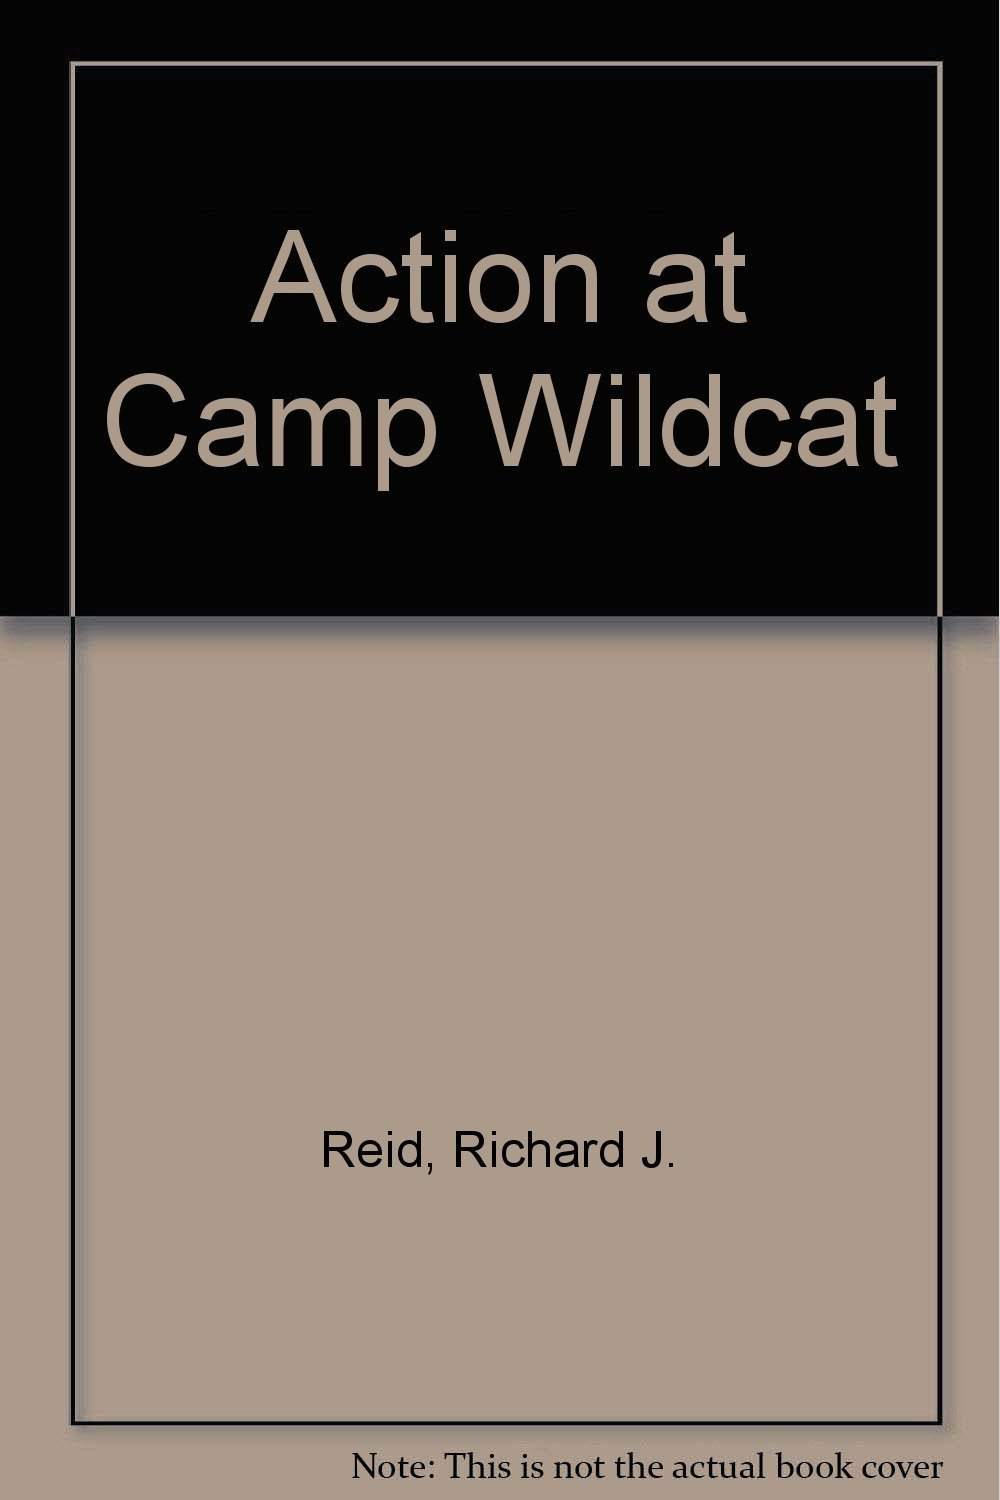 Action at Camp Wildcat [Paperback] [Jan 01, 1990] Reid, Richard J.